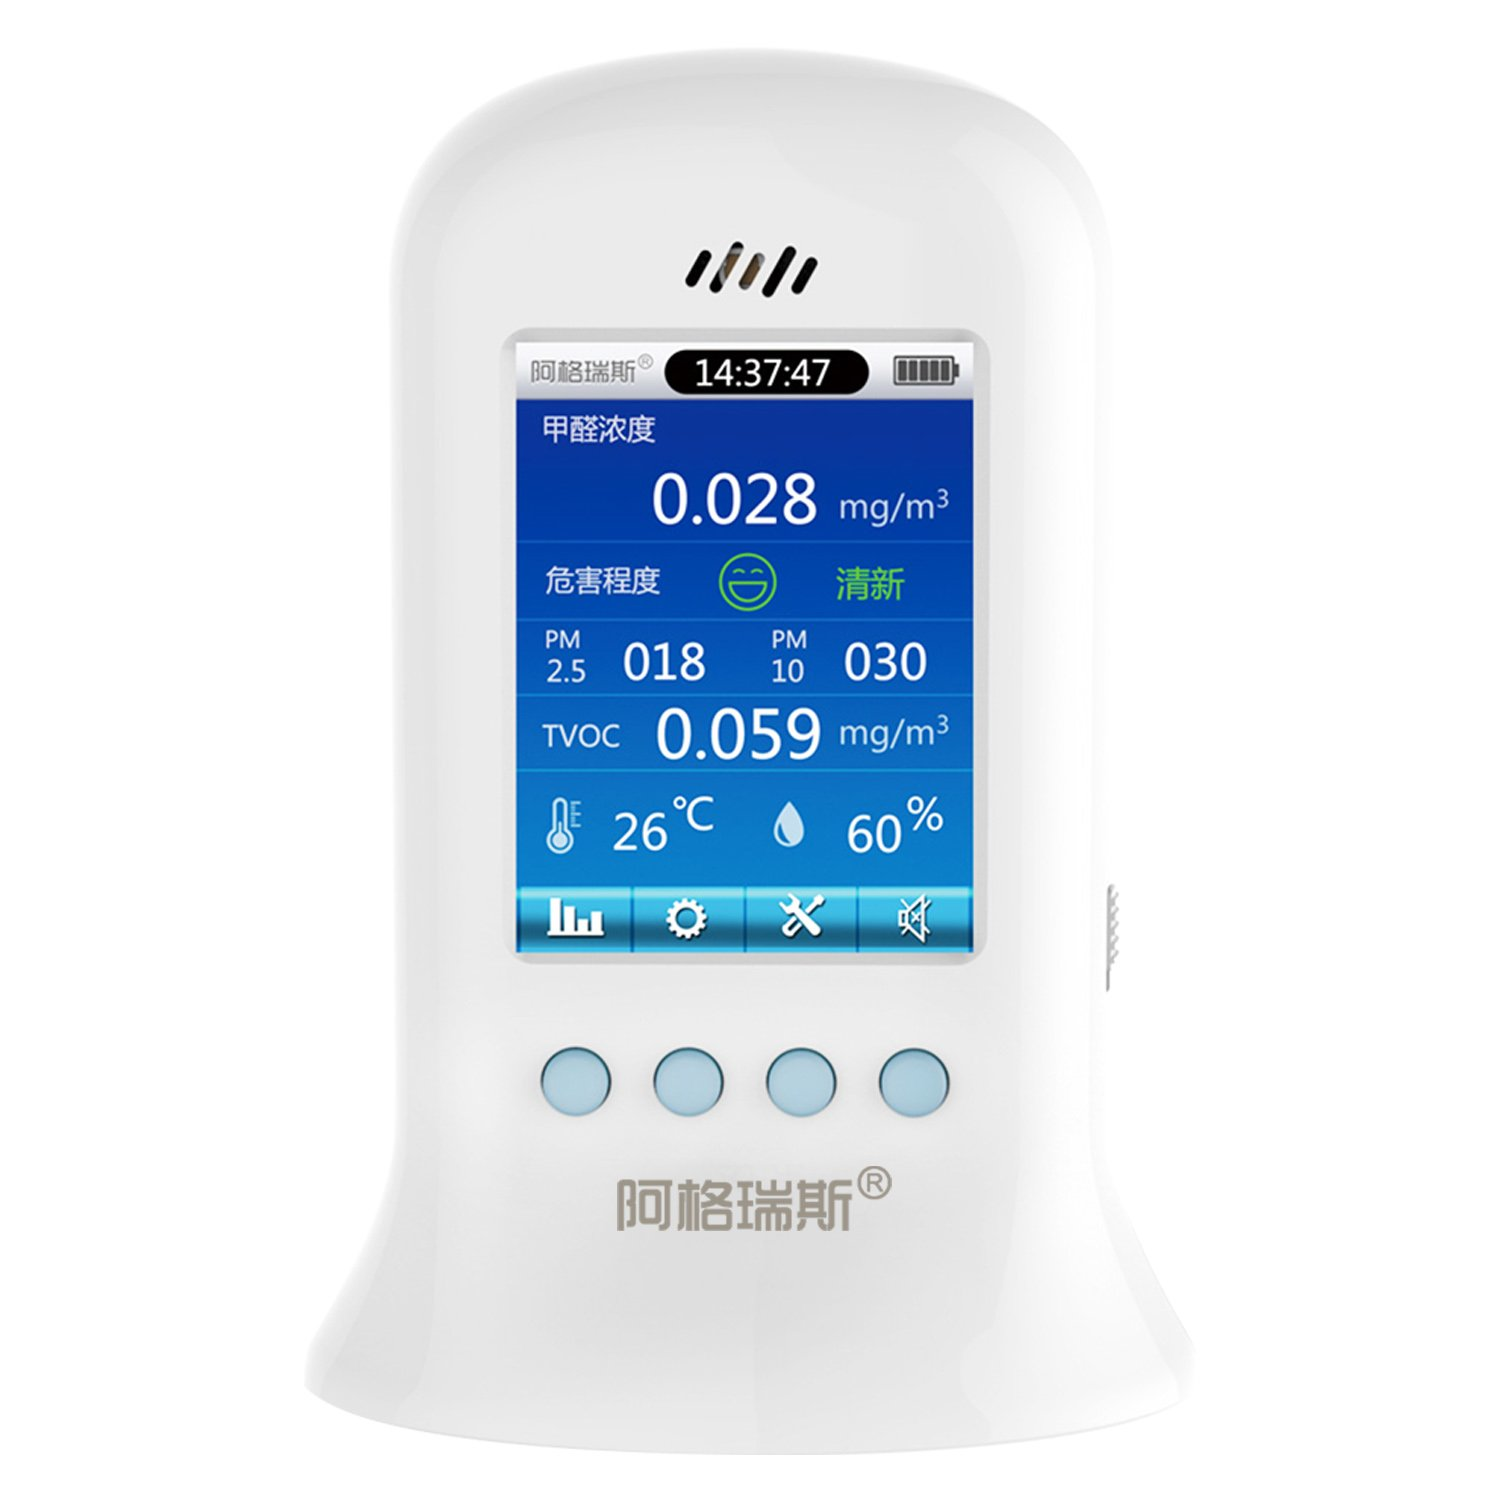 Air Quality Meter Outdoor Detector Accurate Formaldehyde(HCHO) Monitoring PM2.5/PM10 Detector and TVOC Test Data Logger with Temperature and Humidity Measurement for Home Automobile by IGERESS